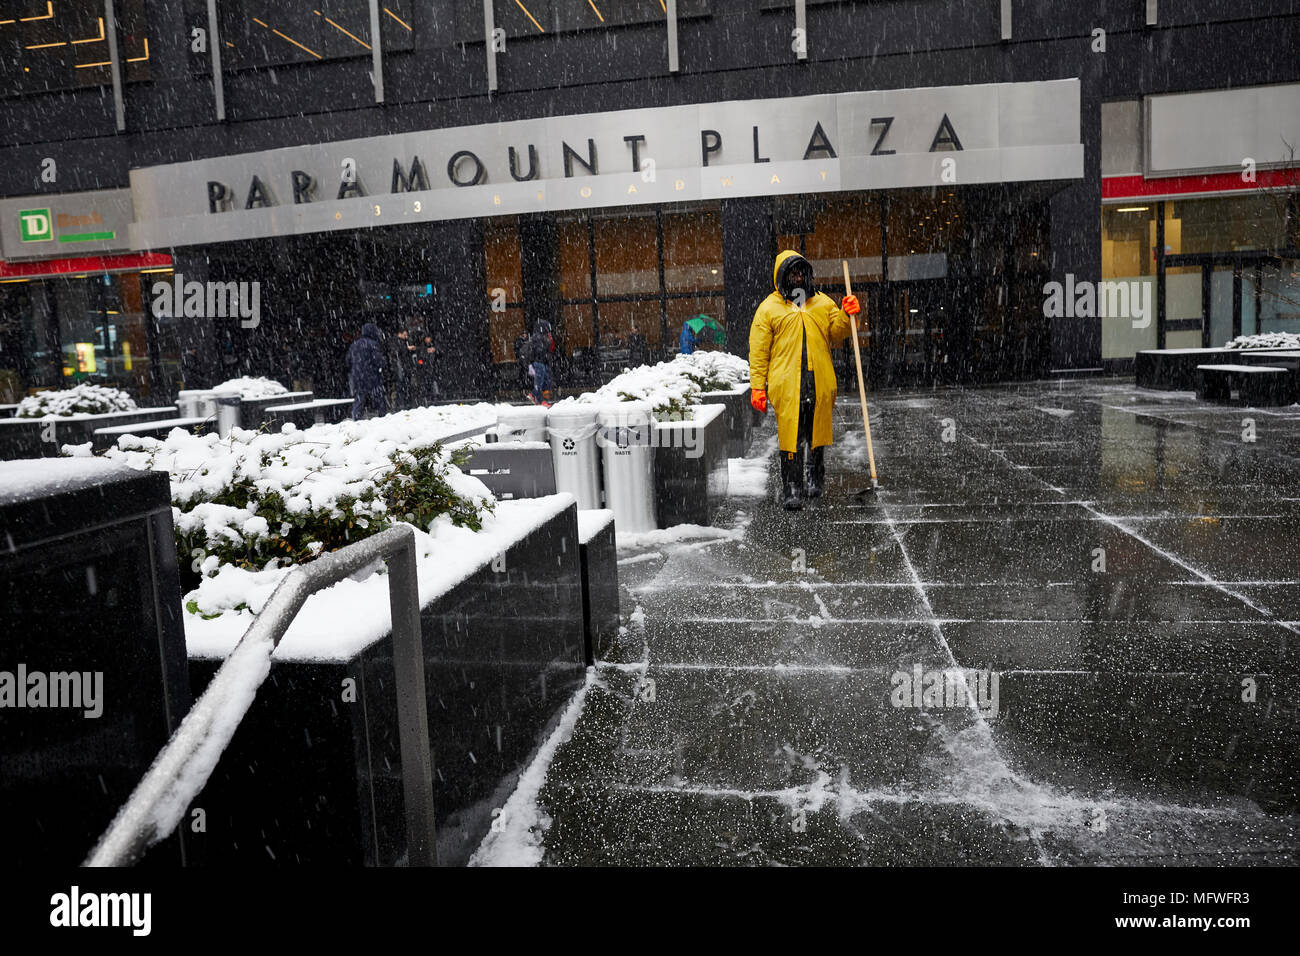 Manhattan in New York City , Paramount Plaza  covered by a snow fall near Times Square - Stock Image